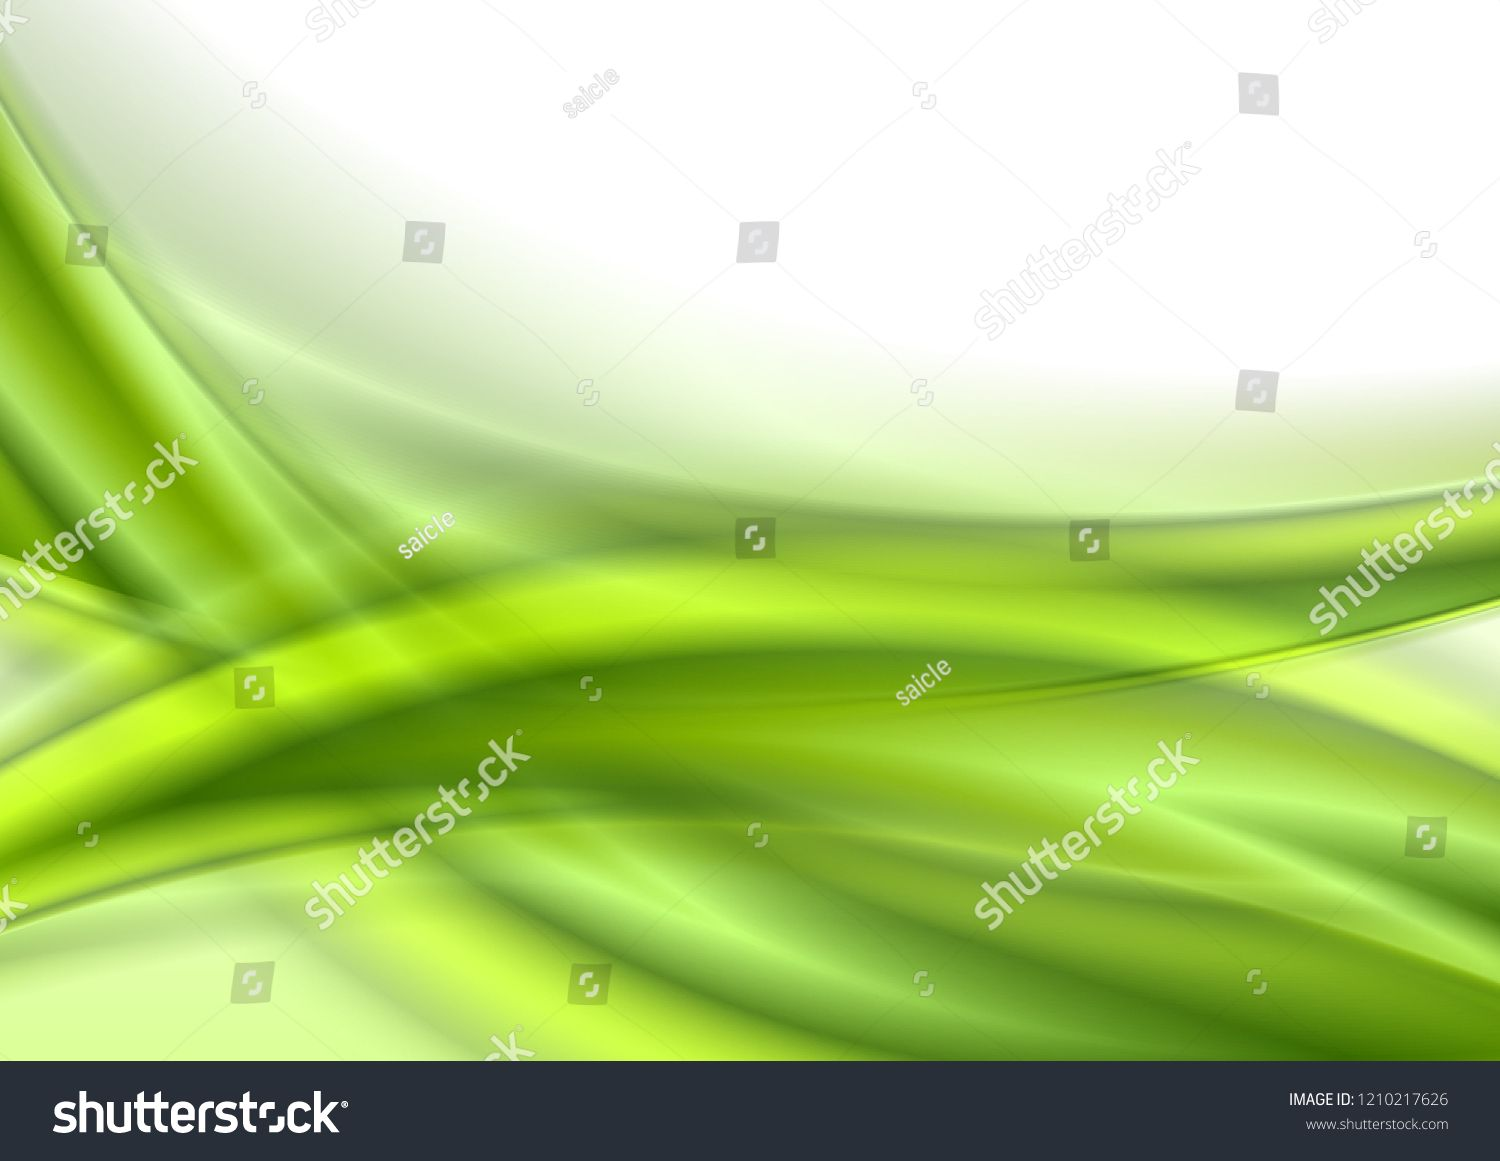 Abstract Green Smooth Shiny Waves On White Background Vector